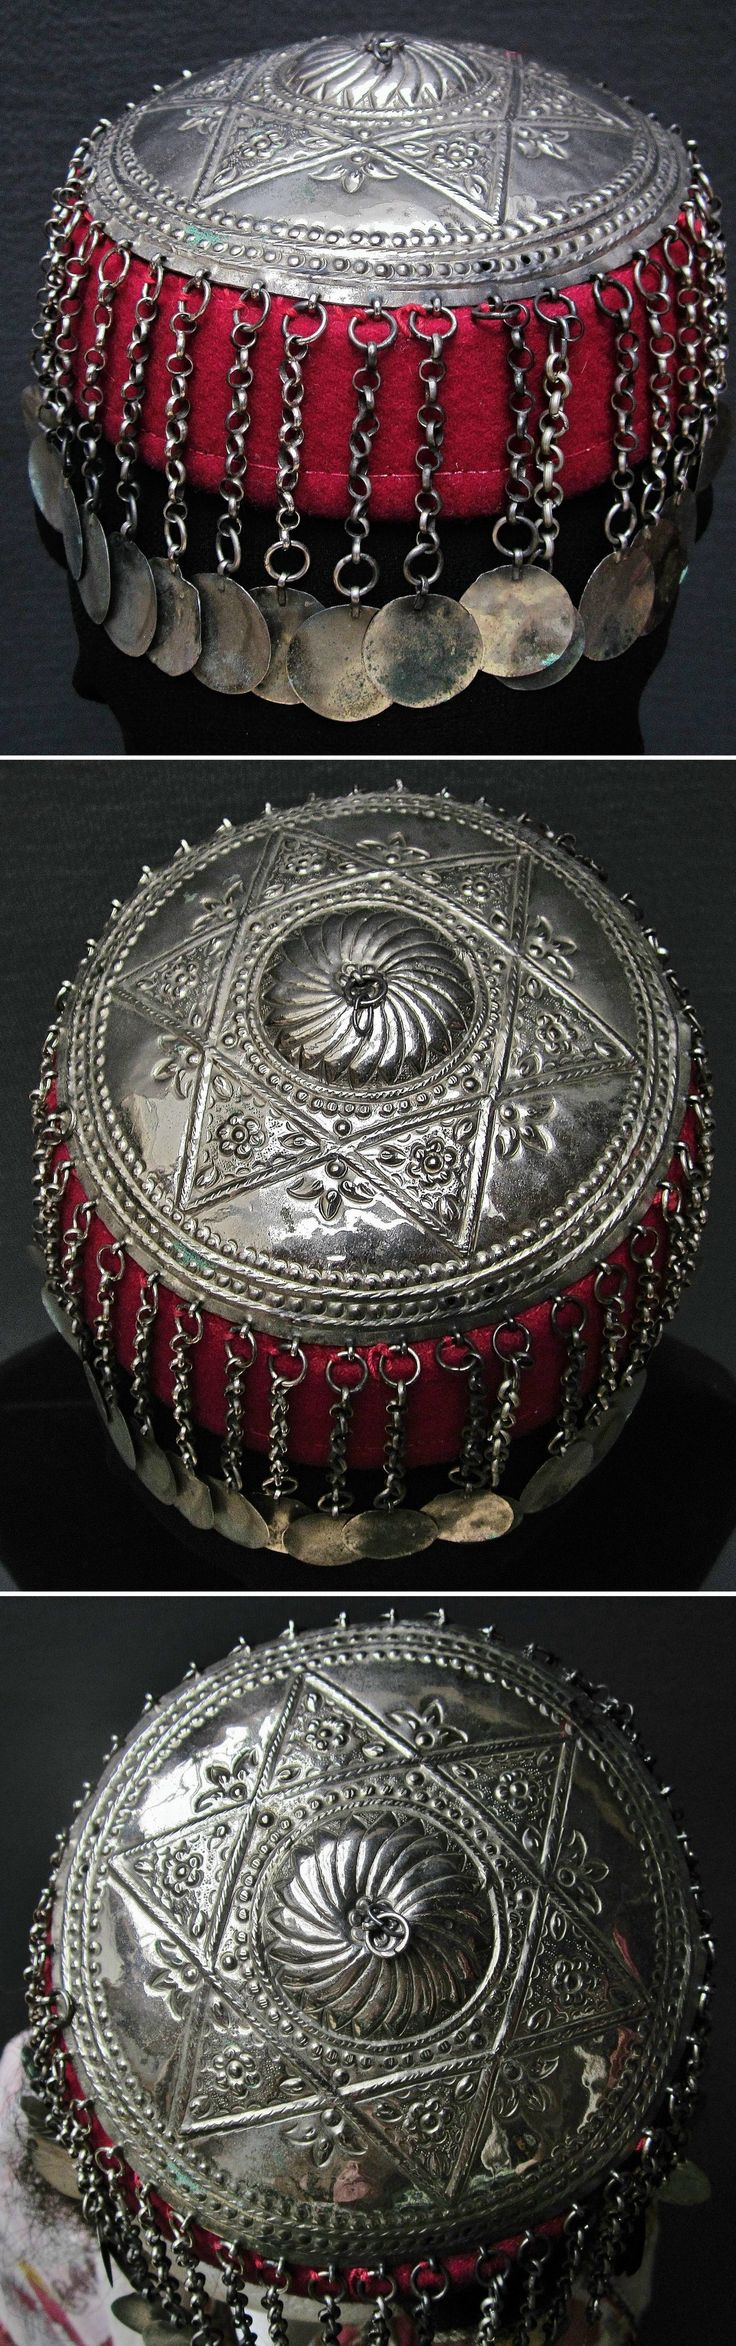 Silver 'tepelik' (metal cover of a woman's hat). From western Anatolia, ca. 1900. Purchased in Bursa, in 1998. With embossed floral motifs in a six-pointed star. The six-pointed star ('Davut Yıldızı' = Star of David) was used by Muslims and Christians, and during the 19th century increasingly by the Jews also. (Inv.nr. tep020-Kavak Costume Collection - Antwerpen/Belgium).